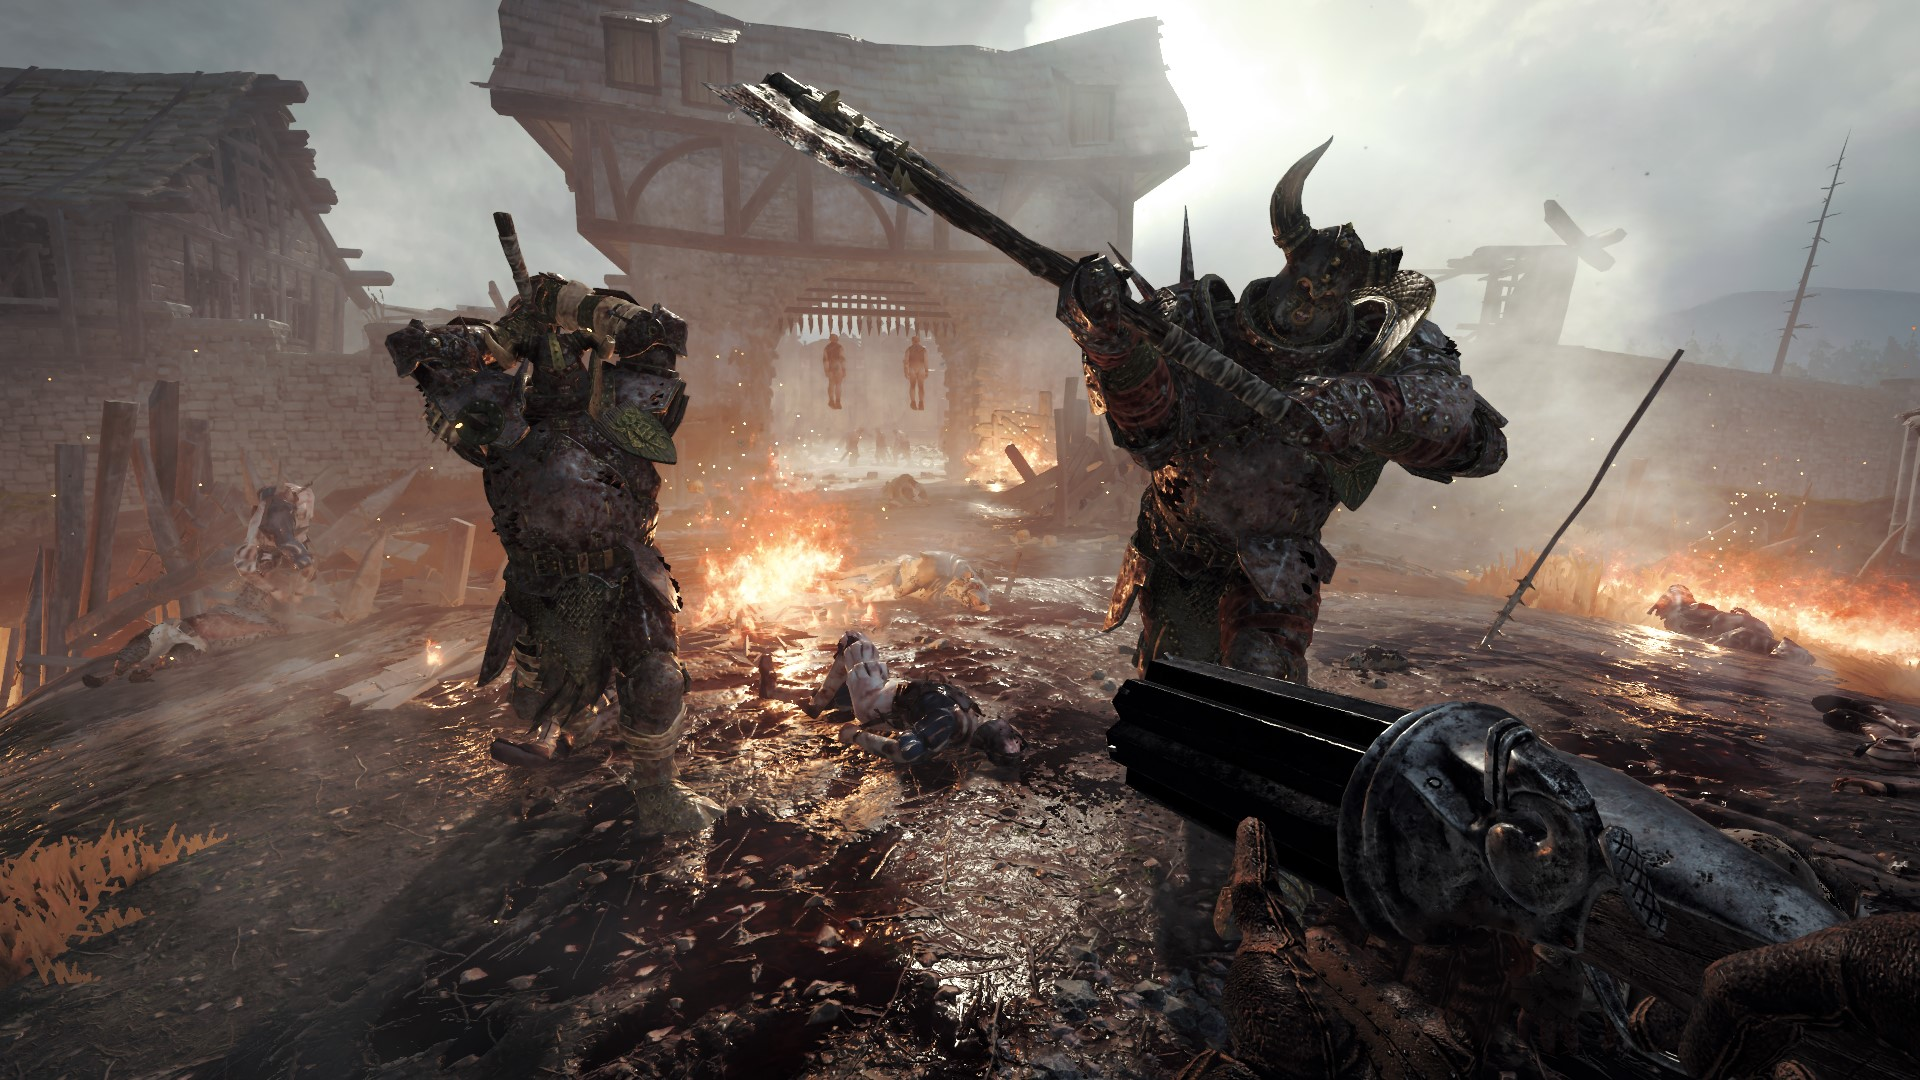 Vermintide 2 is free to play this weekend for the launch of Chaos Wastes